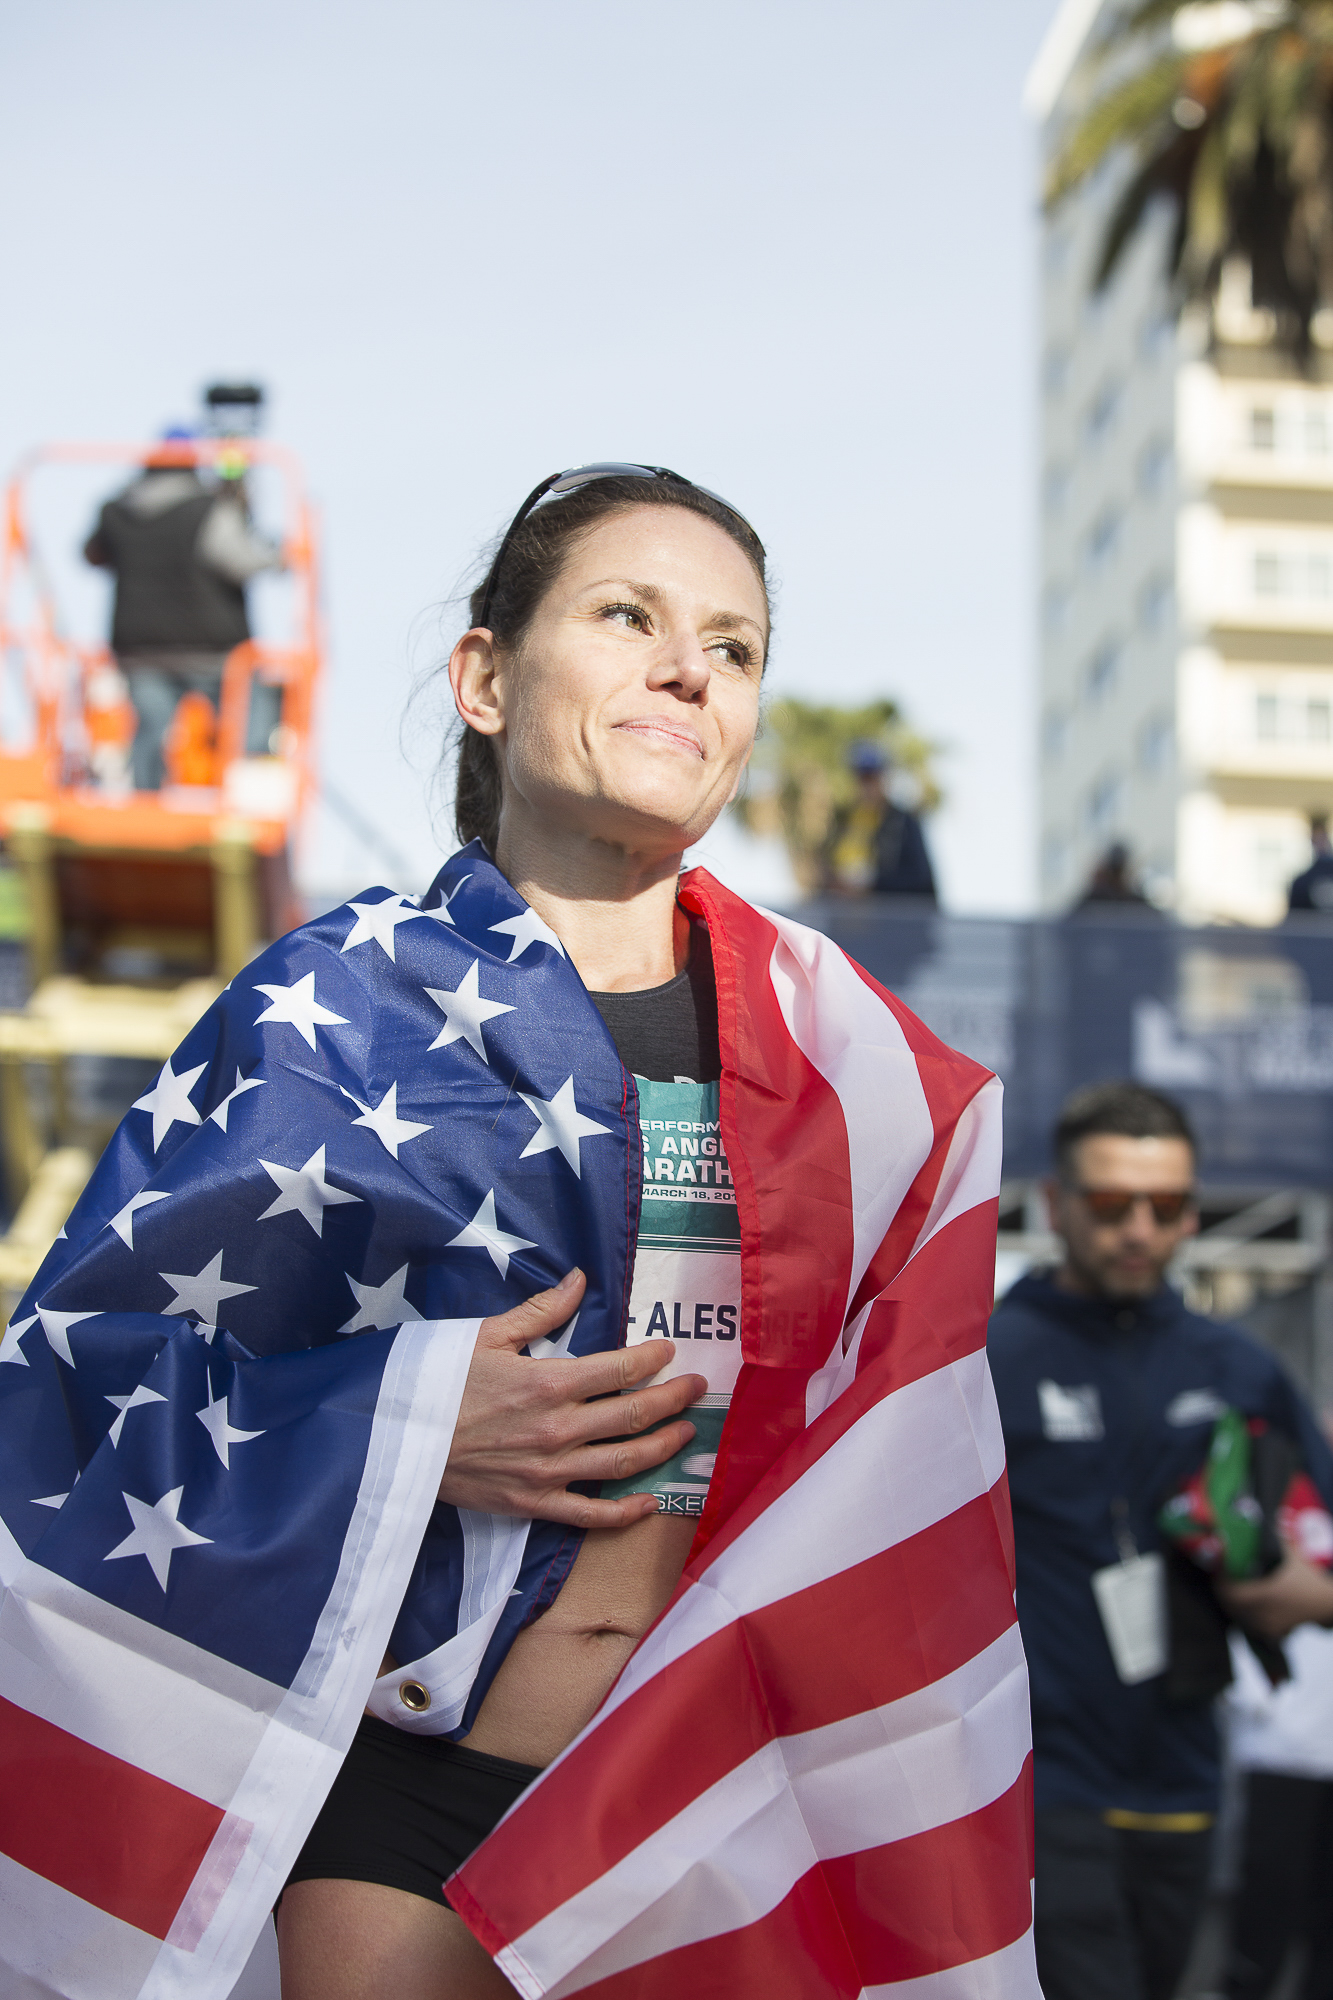 Los Angeles Marathon competitor Christina Vergara-Aleshire drapes her US flag around her after coming in fourth-place during the pro women's LA marathon event  on March 18, 2018 in Santa Monica, California. Aleshire received the best finish by an American woman, coming in with a fourth-place with a race time of 2:34.24. (Matthew Martin/Corsair Photo)